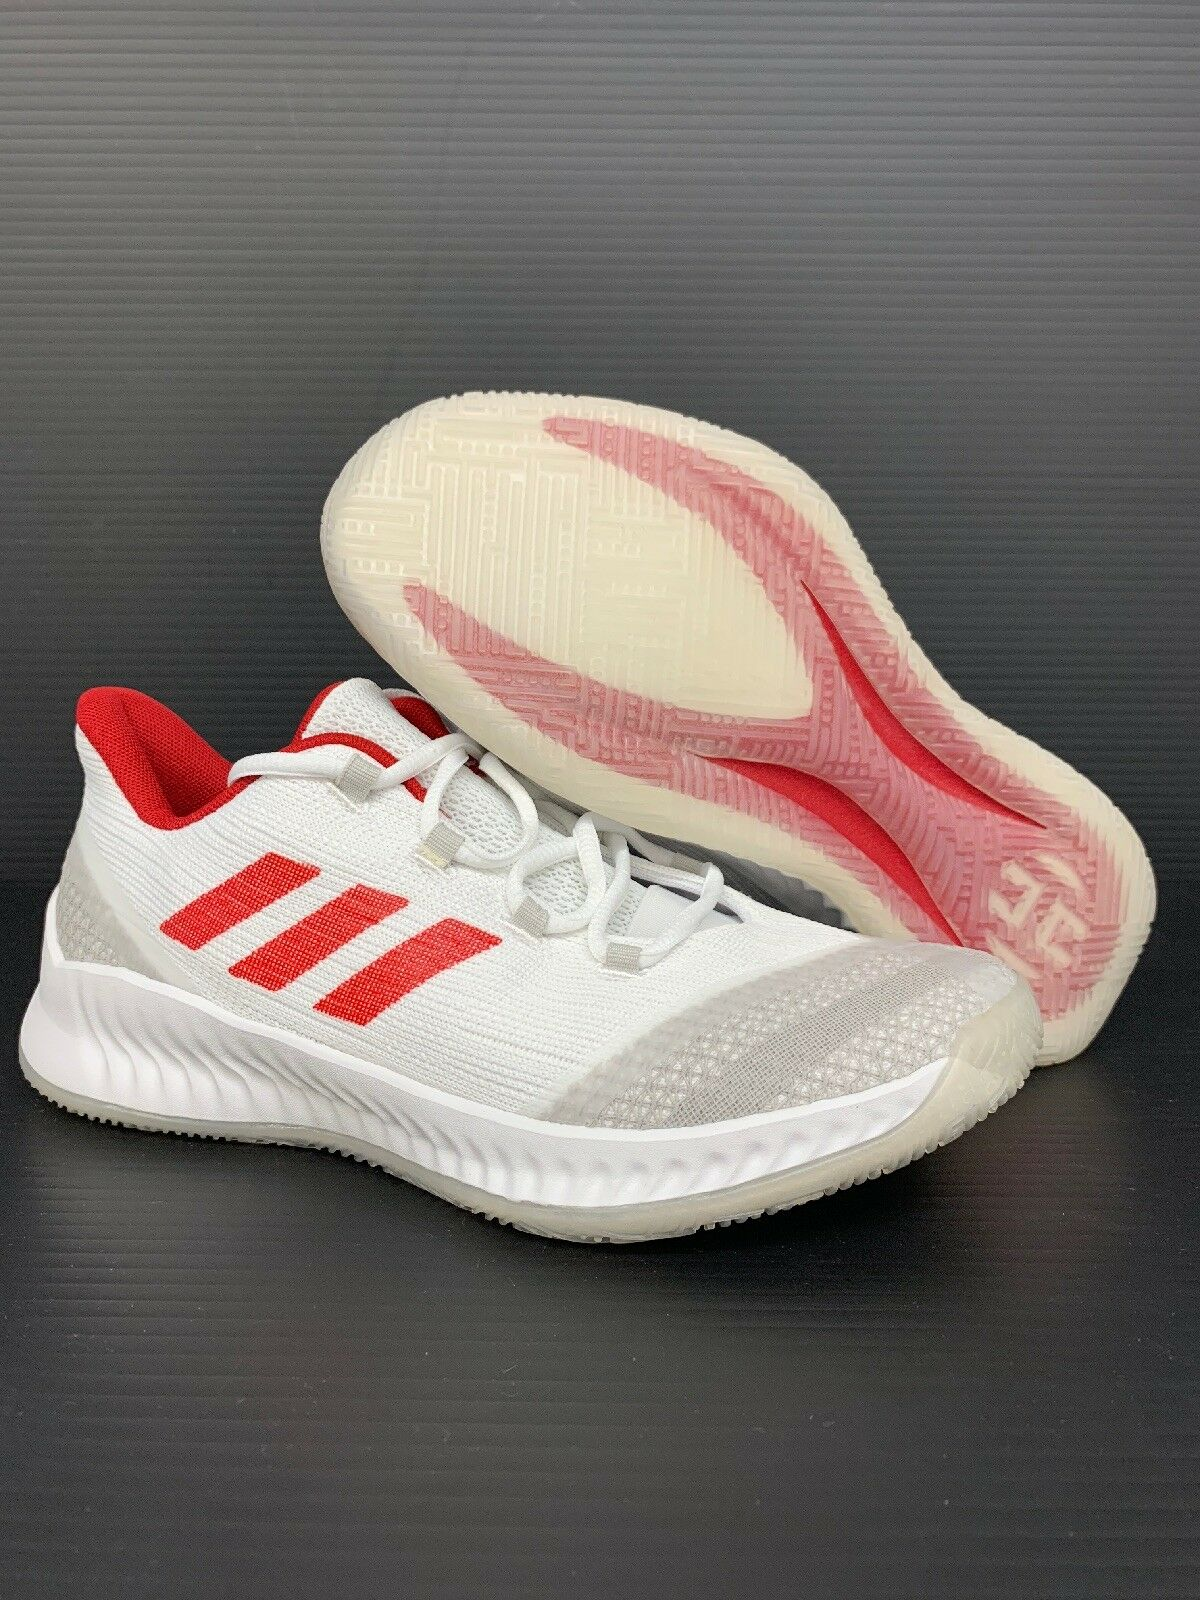 Adidas Harden B E 2 Basketball shoes - New In Box - FREE SHIPPING -